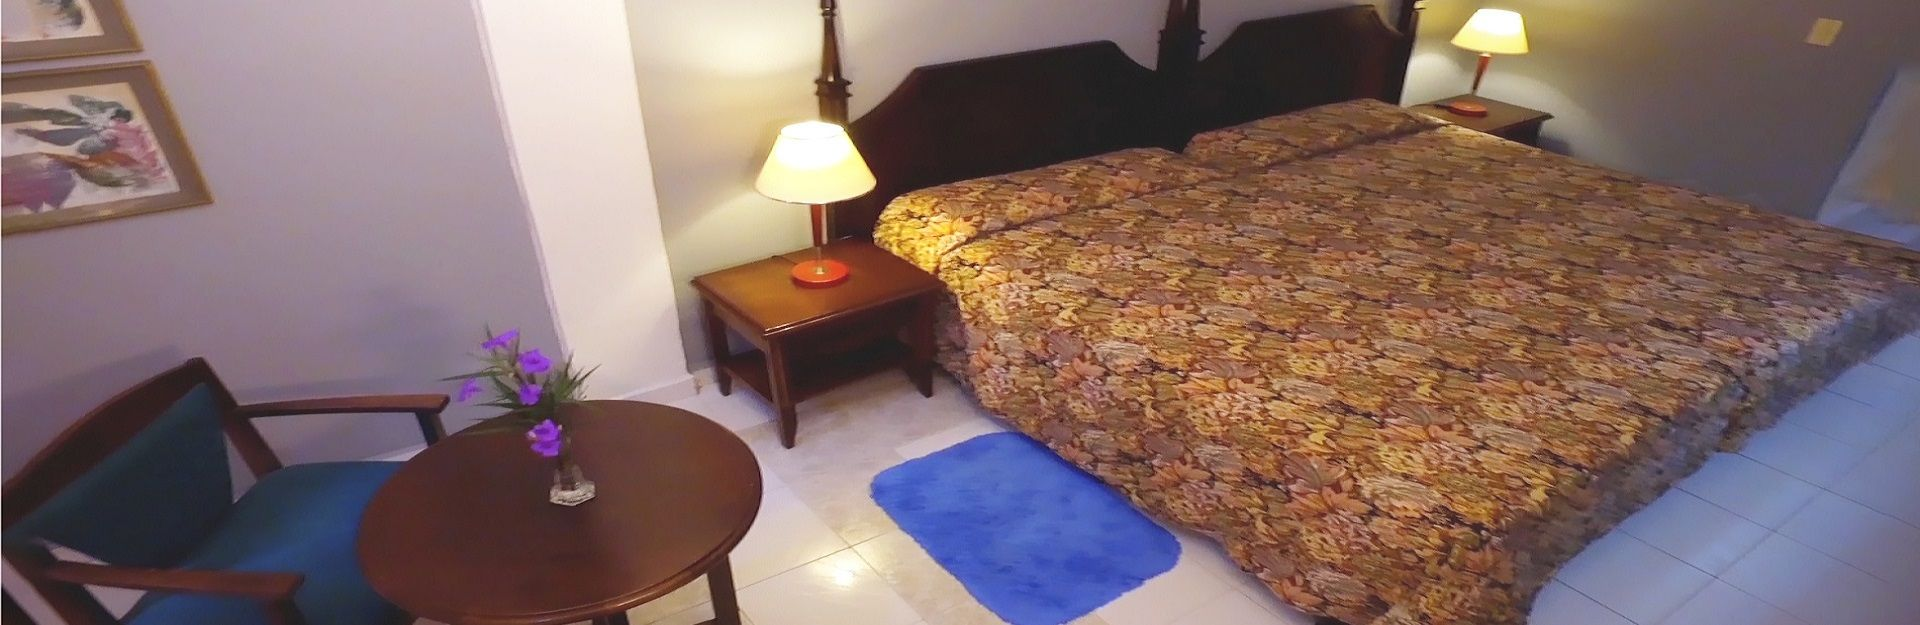 Accommodation in Marea del Portillo, Pilón, Granma, CubaTravel